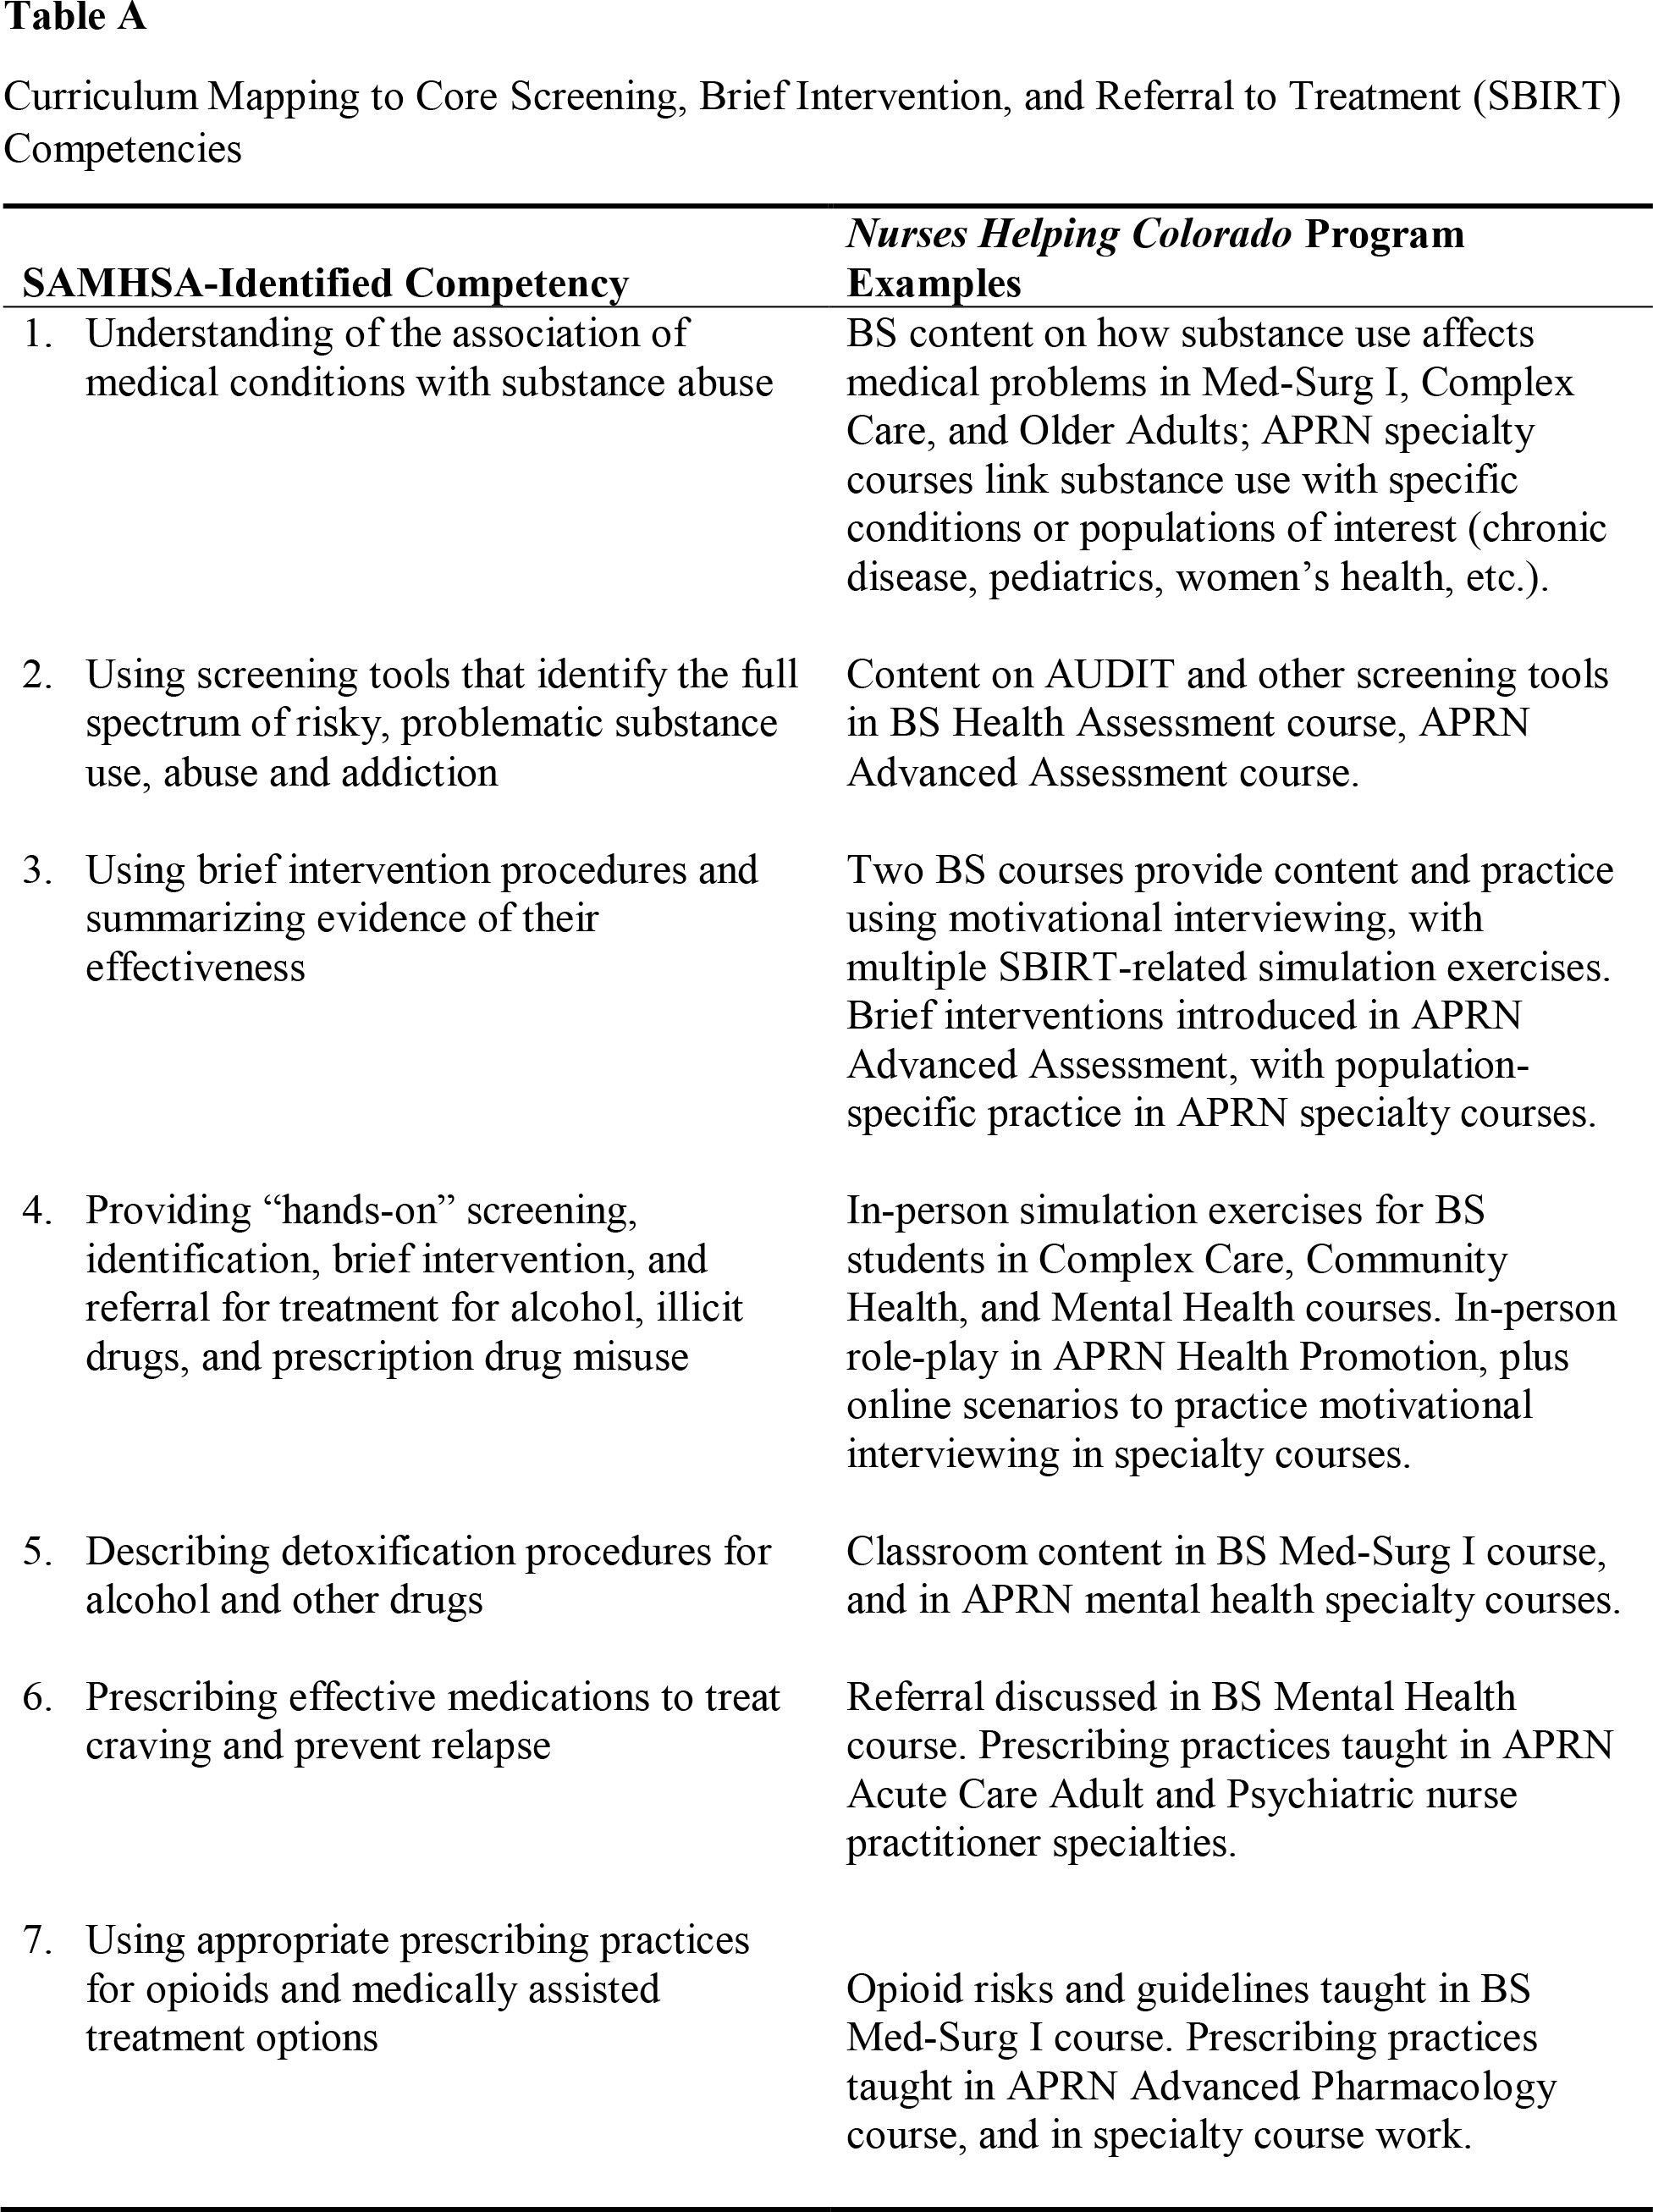 Screening, Brief Intervention, and Referral to Treatment: Nurses